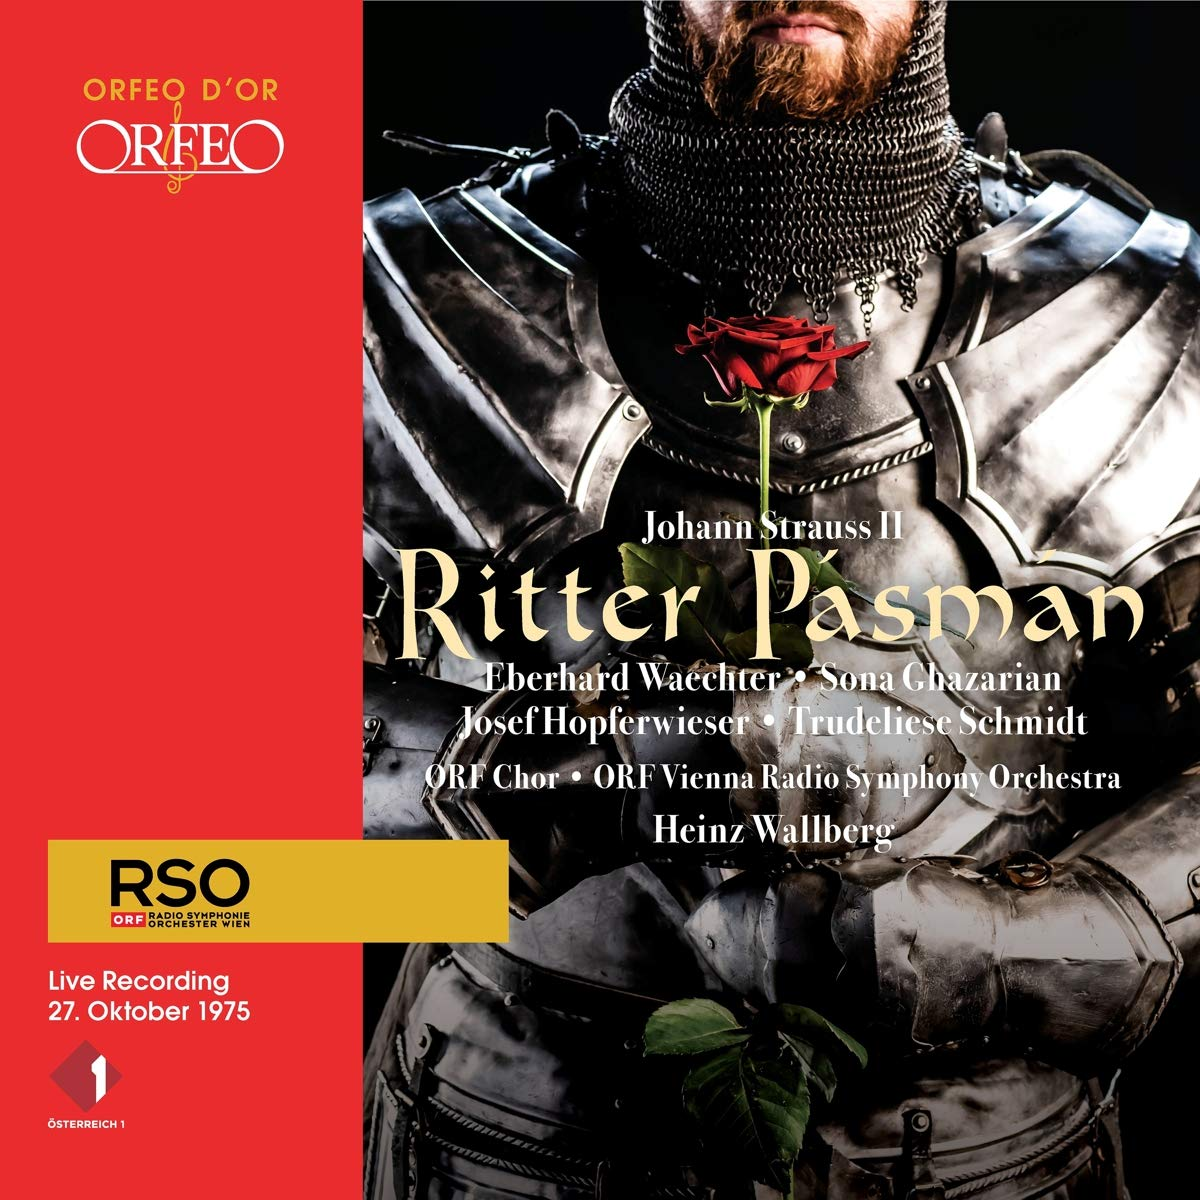 """The CD cover of """"Ritter Pásmán"""" with Eberhard Wächter in the title role. (Photo: Orfeo)"""